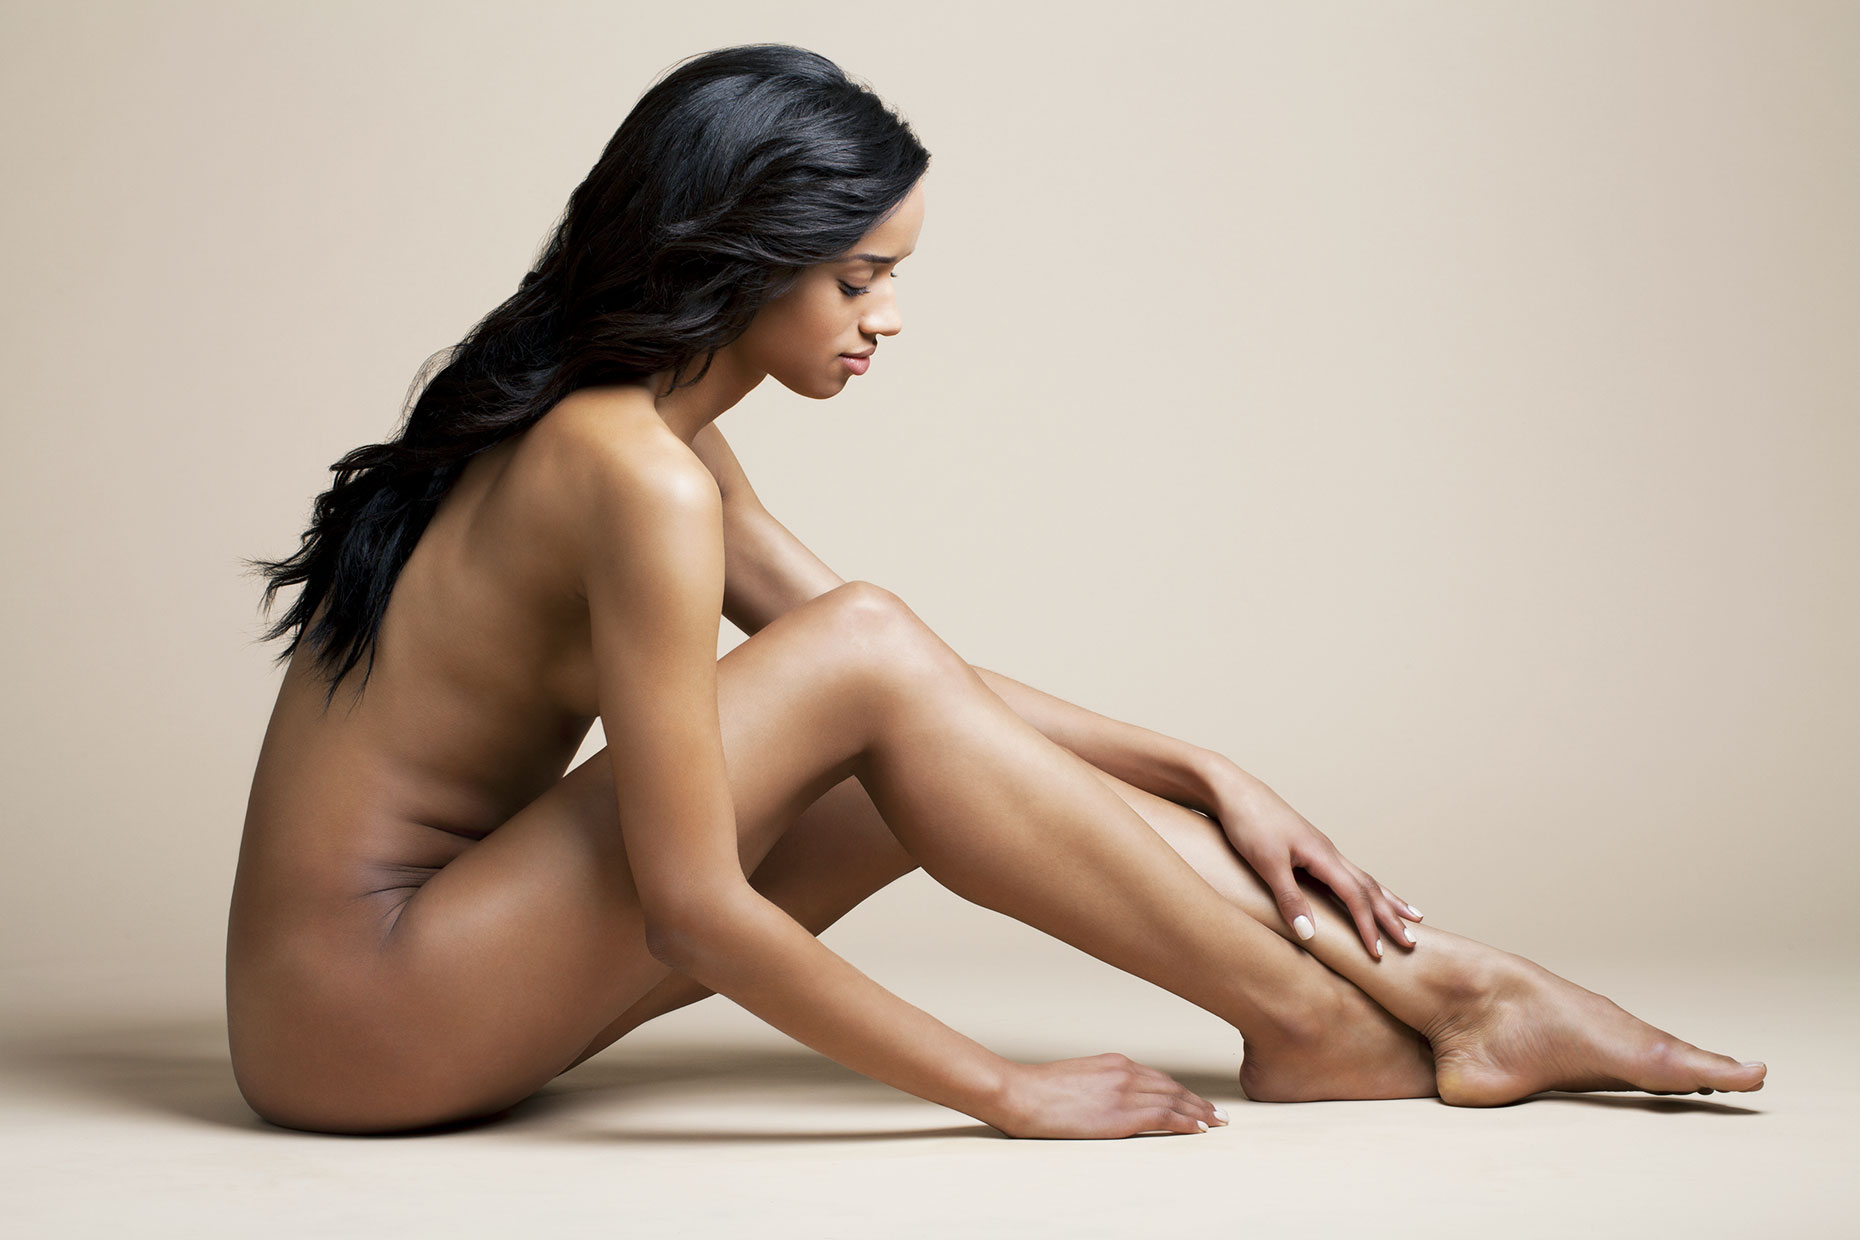 Nude young woman sitting while touching her leg.